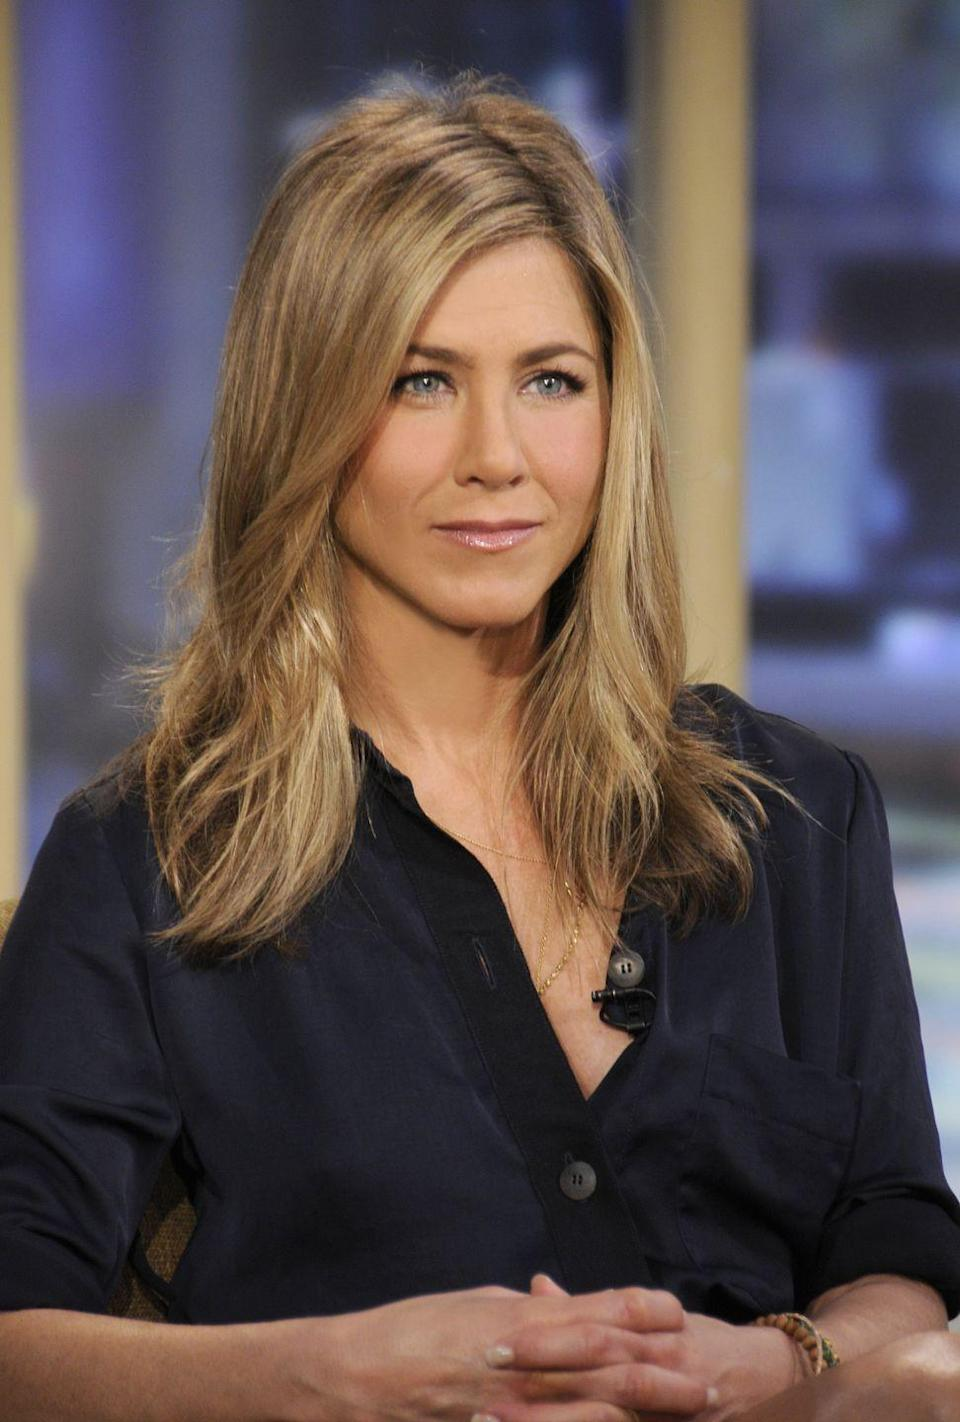 "<p>When Jen wakes up, she takes a mindful approach to her day. She told <a href=""https://www.womenshealthmag.com/weight-loss/a29547718/jennifer-aniston-reese-witherspoon-intermittent-fasting/"" rel=""nofollow noopener"" target=""_blank"" data-ylk=""slk:Radio Times"" class=""link rapid-noclick-resp"">Radio Times</a> that she has a celery juice and meditates before jumping into a workout.</p>"